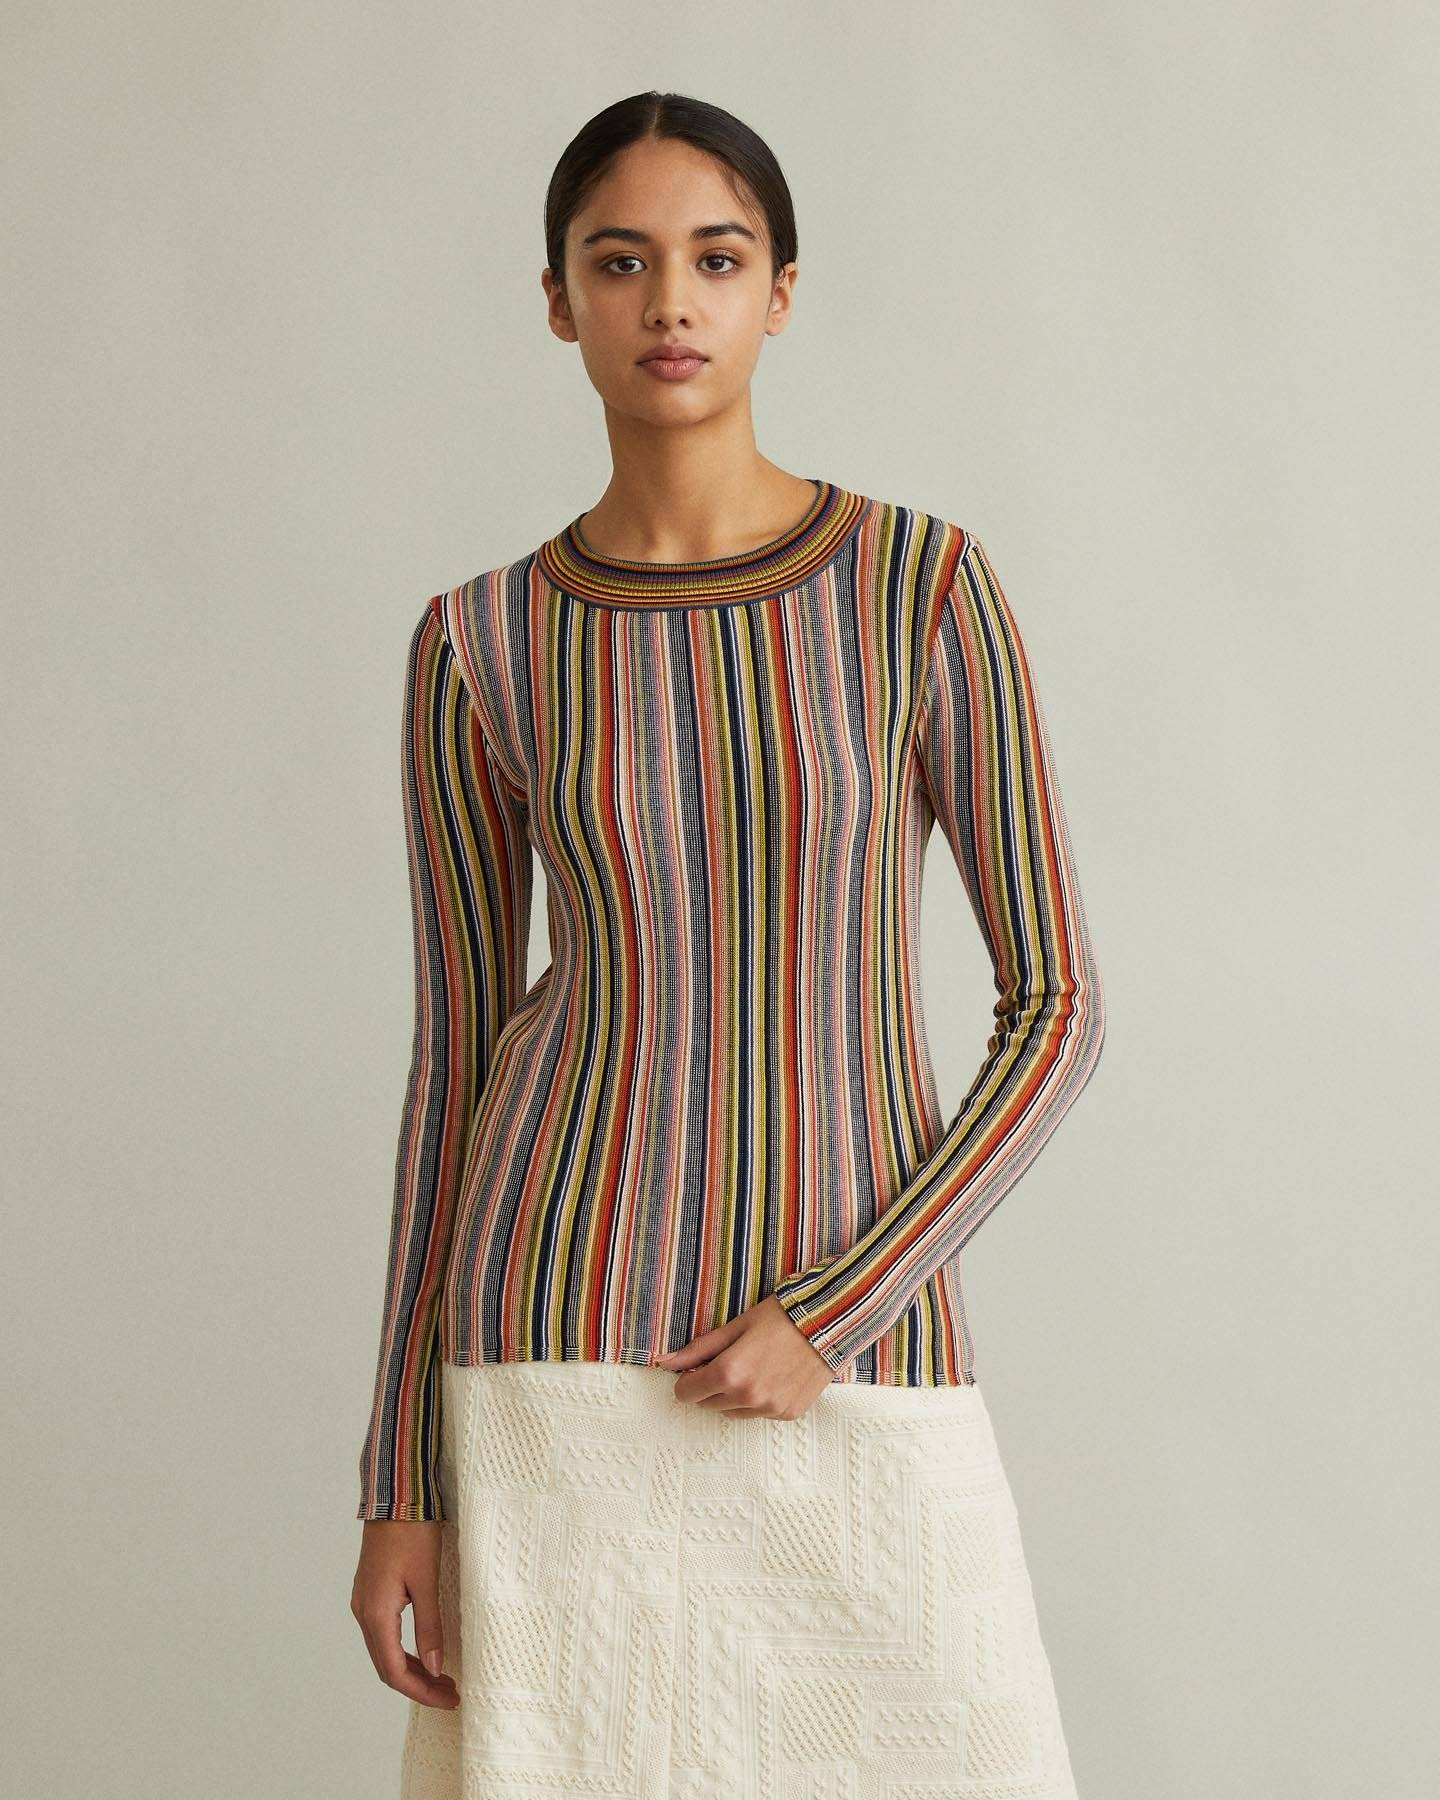 /products/valla-multicolored-striped-sweater